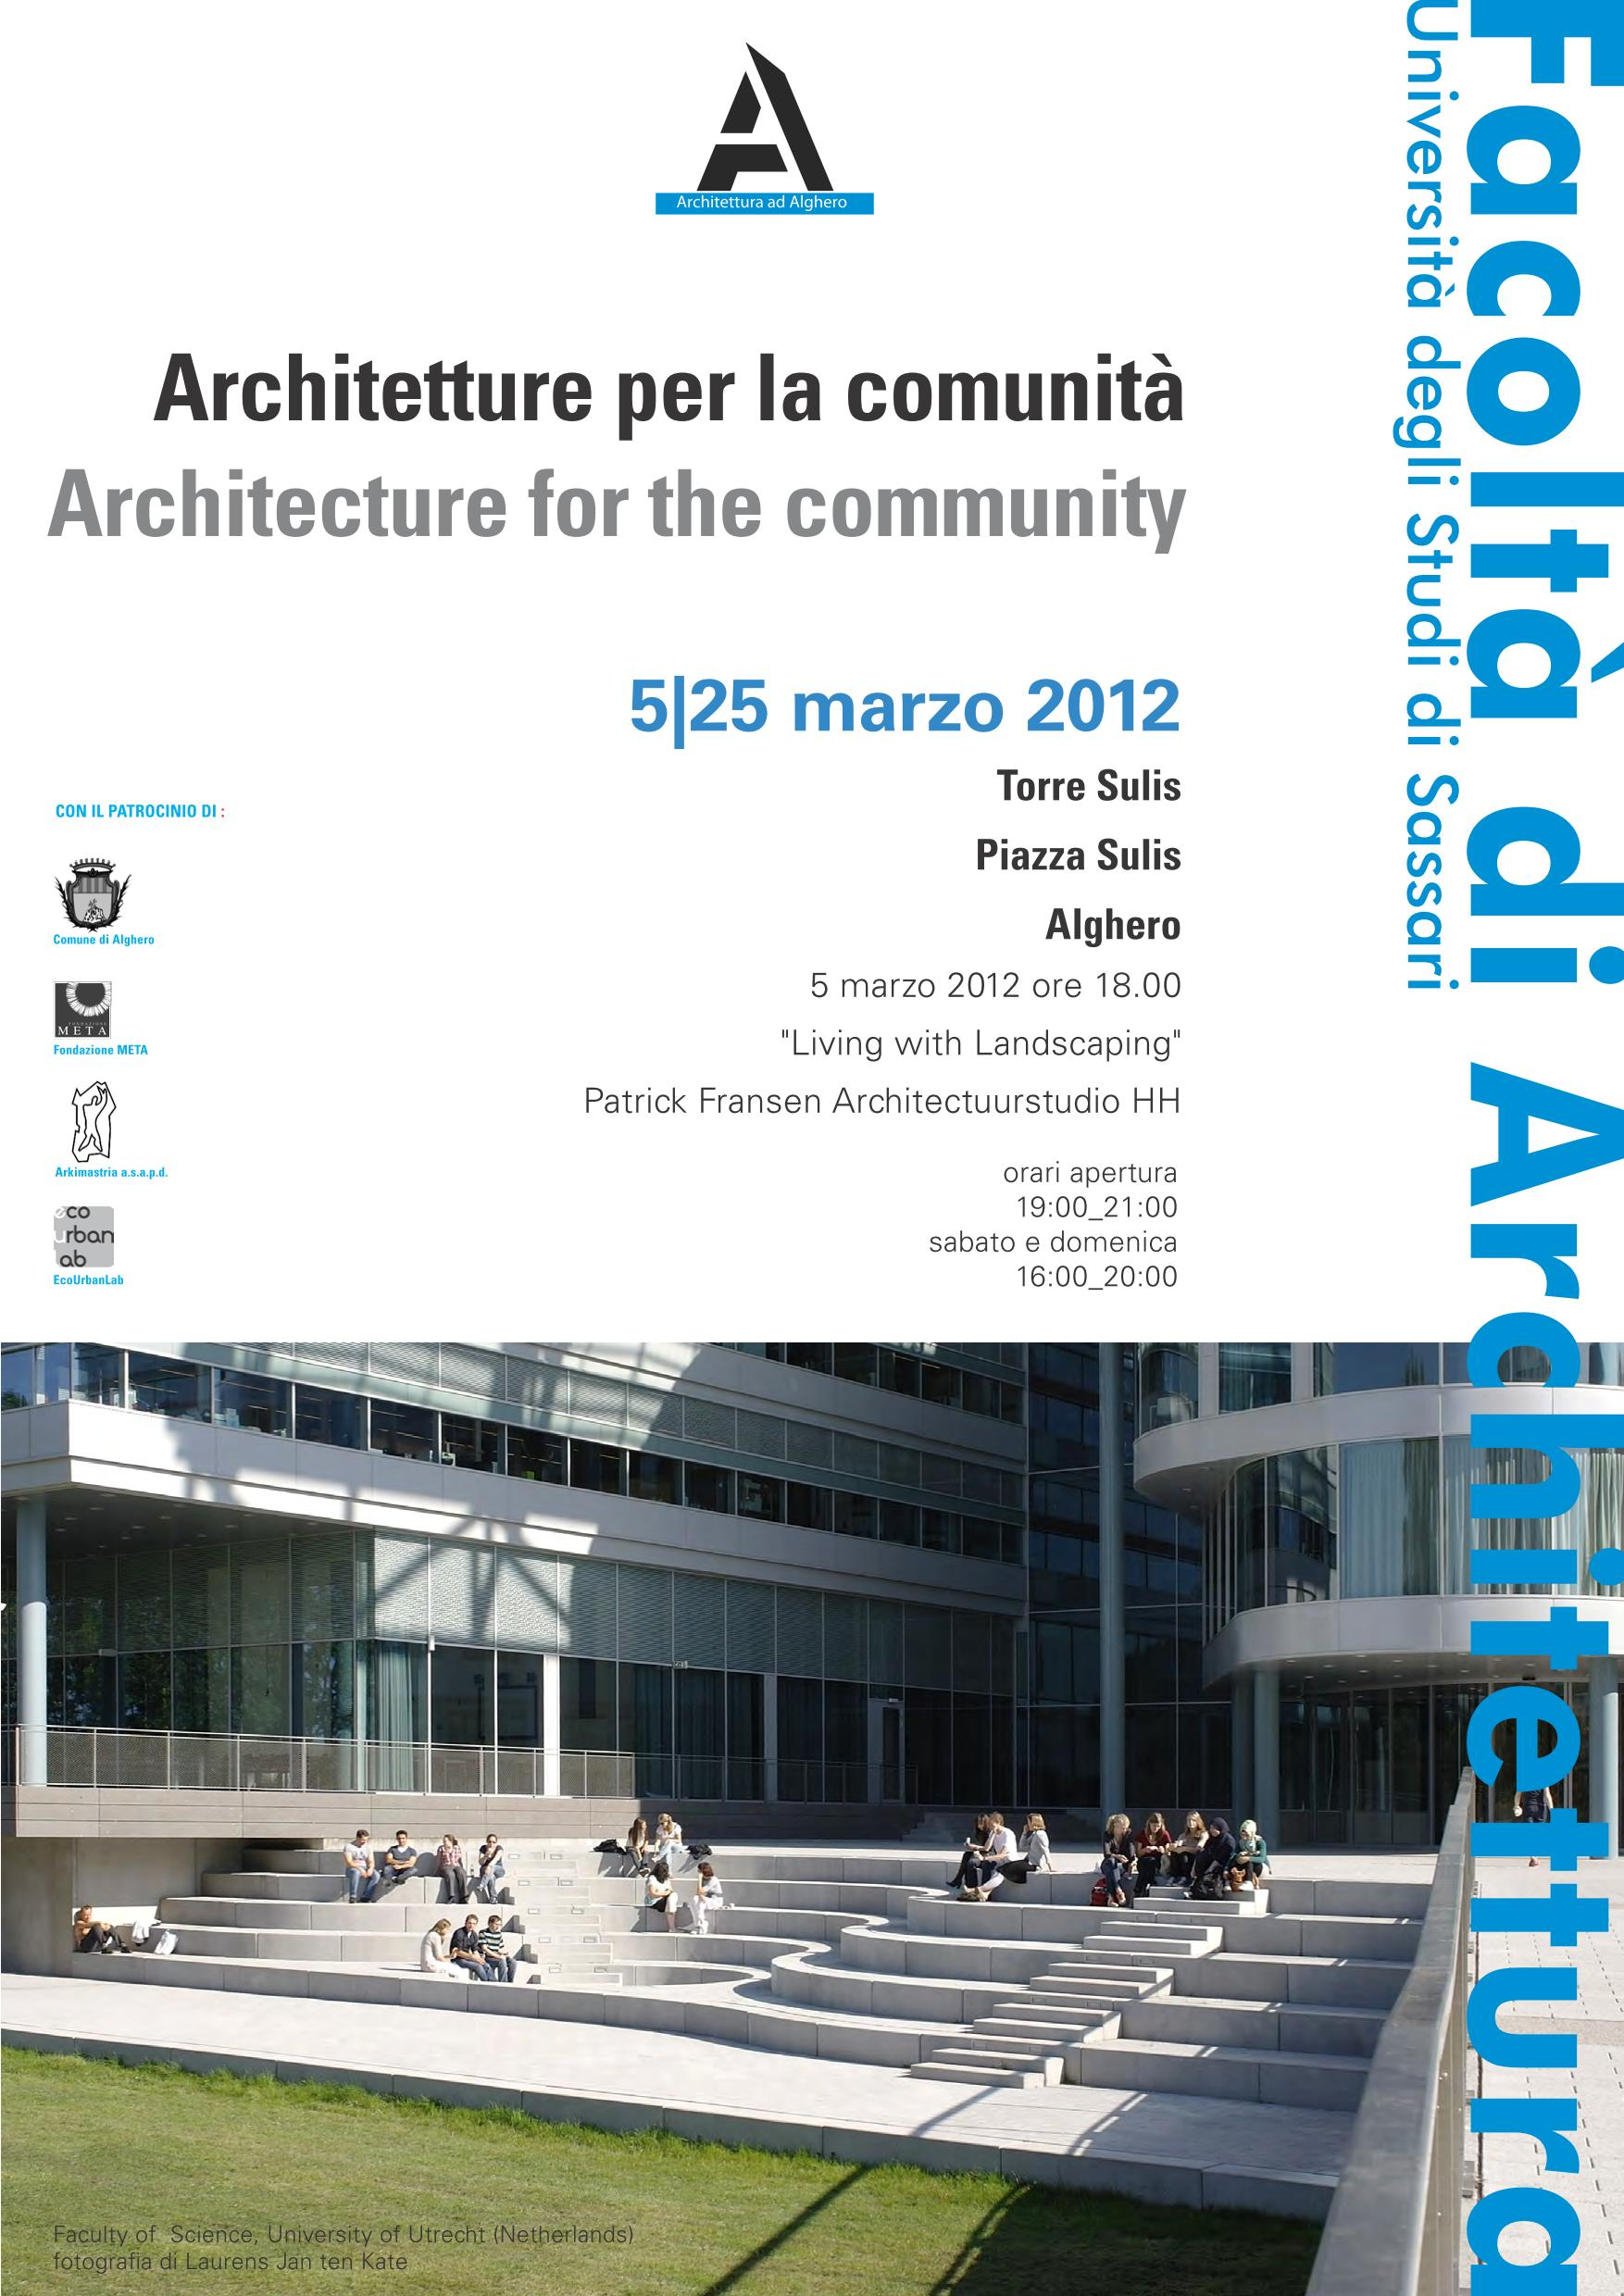 Architecture for the community